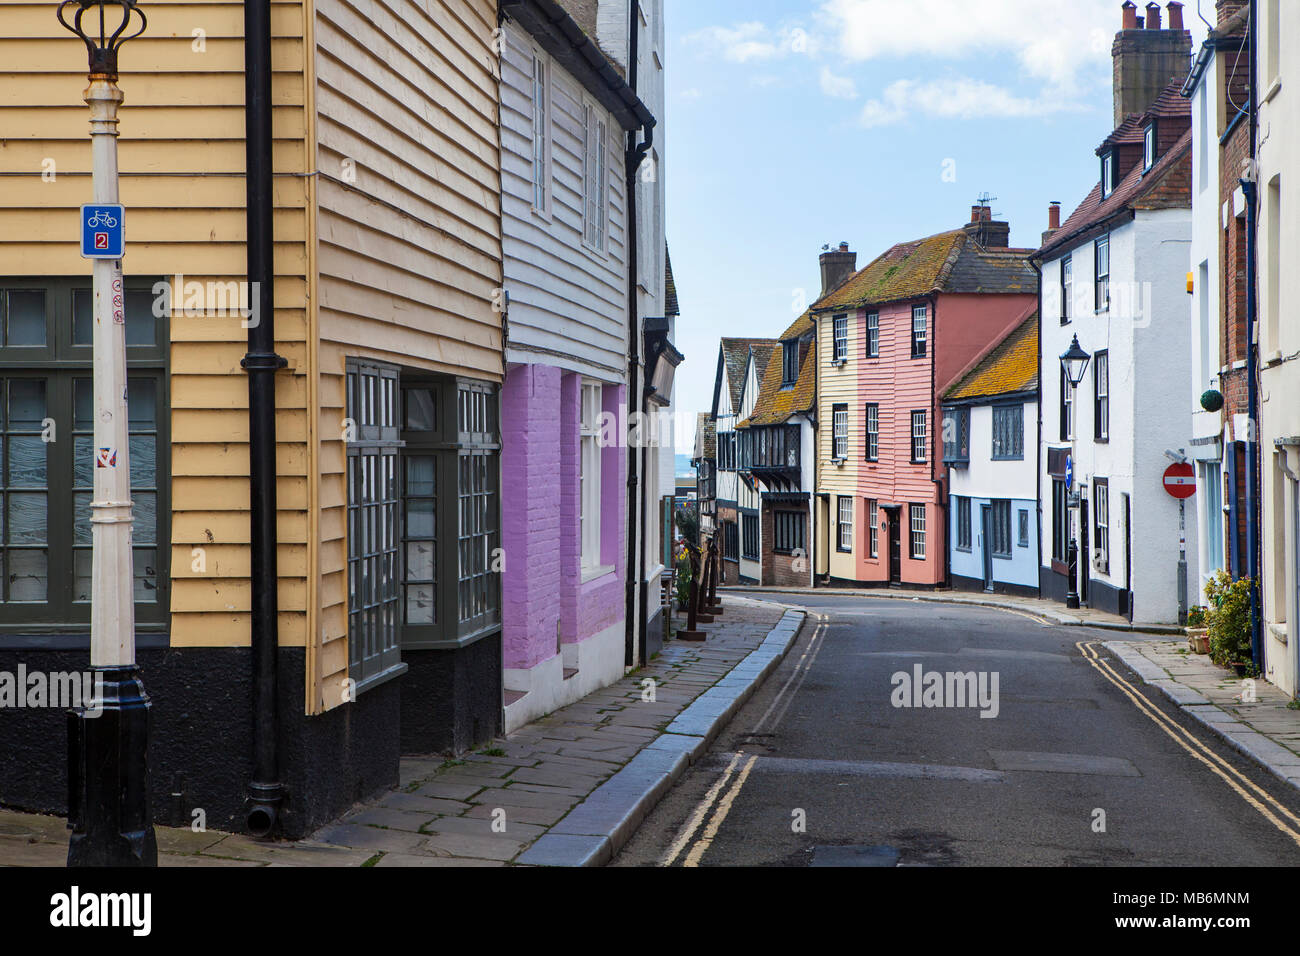 HASTINGS, UK - APRIL 5th, 2018: View of quiet street in seaside town of Hastings with traditional house.  Hastings is a historic town known for the 10 - Stock Image